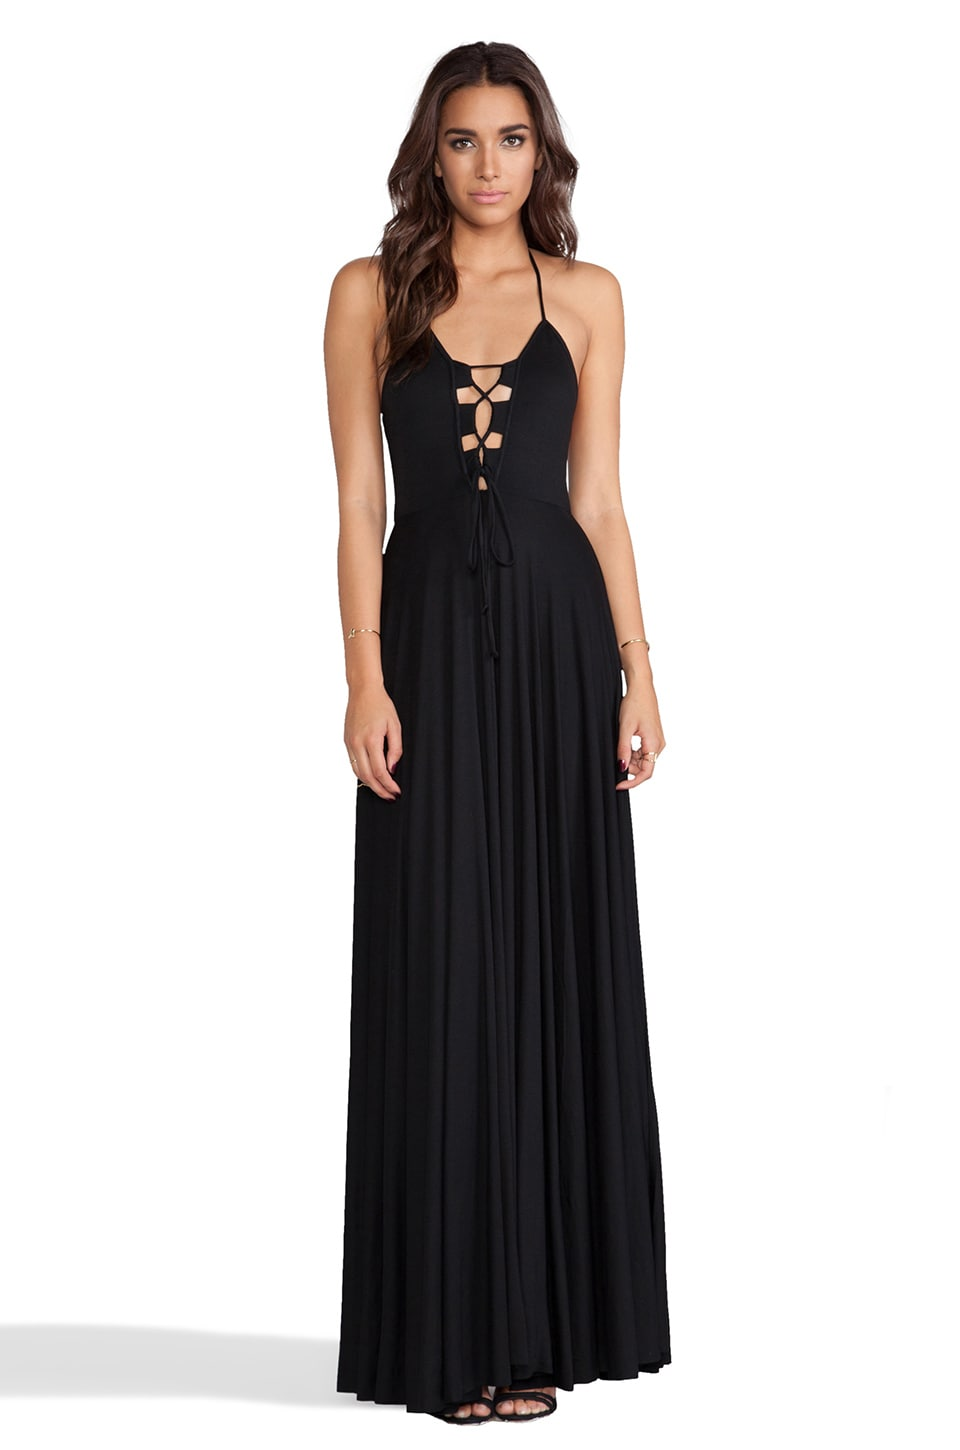 Rachel Pally Harrison Dress in Black